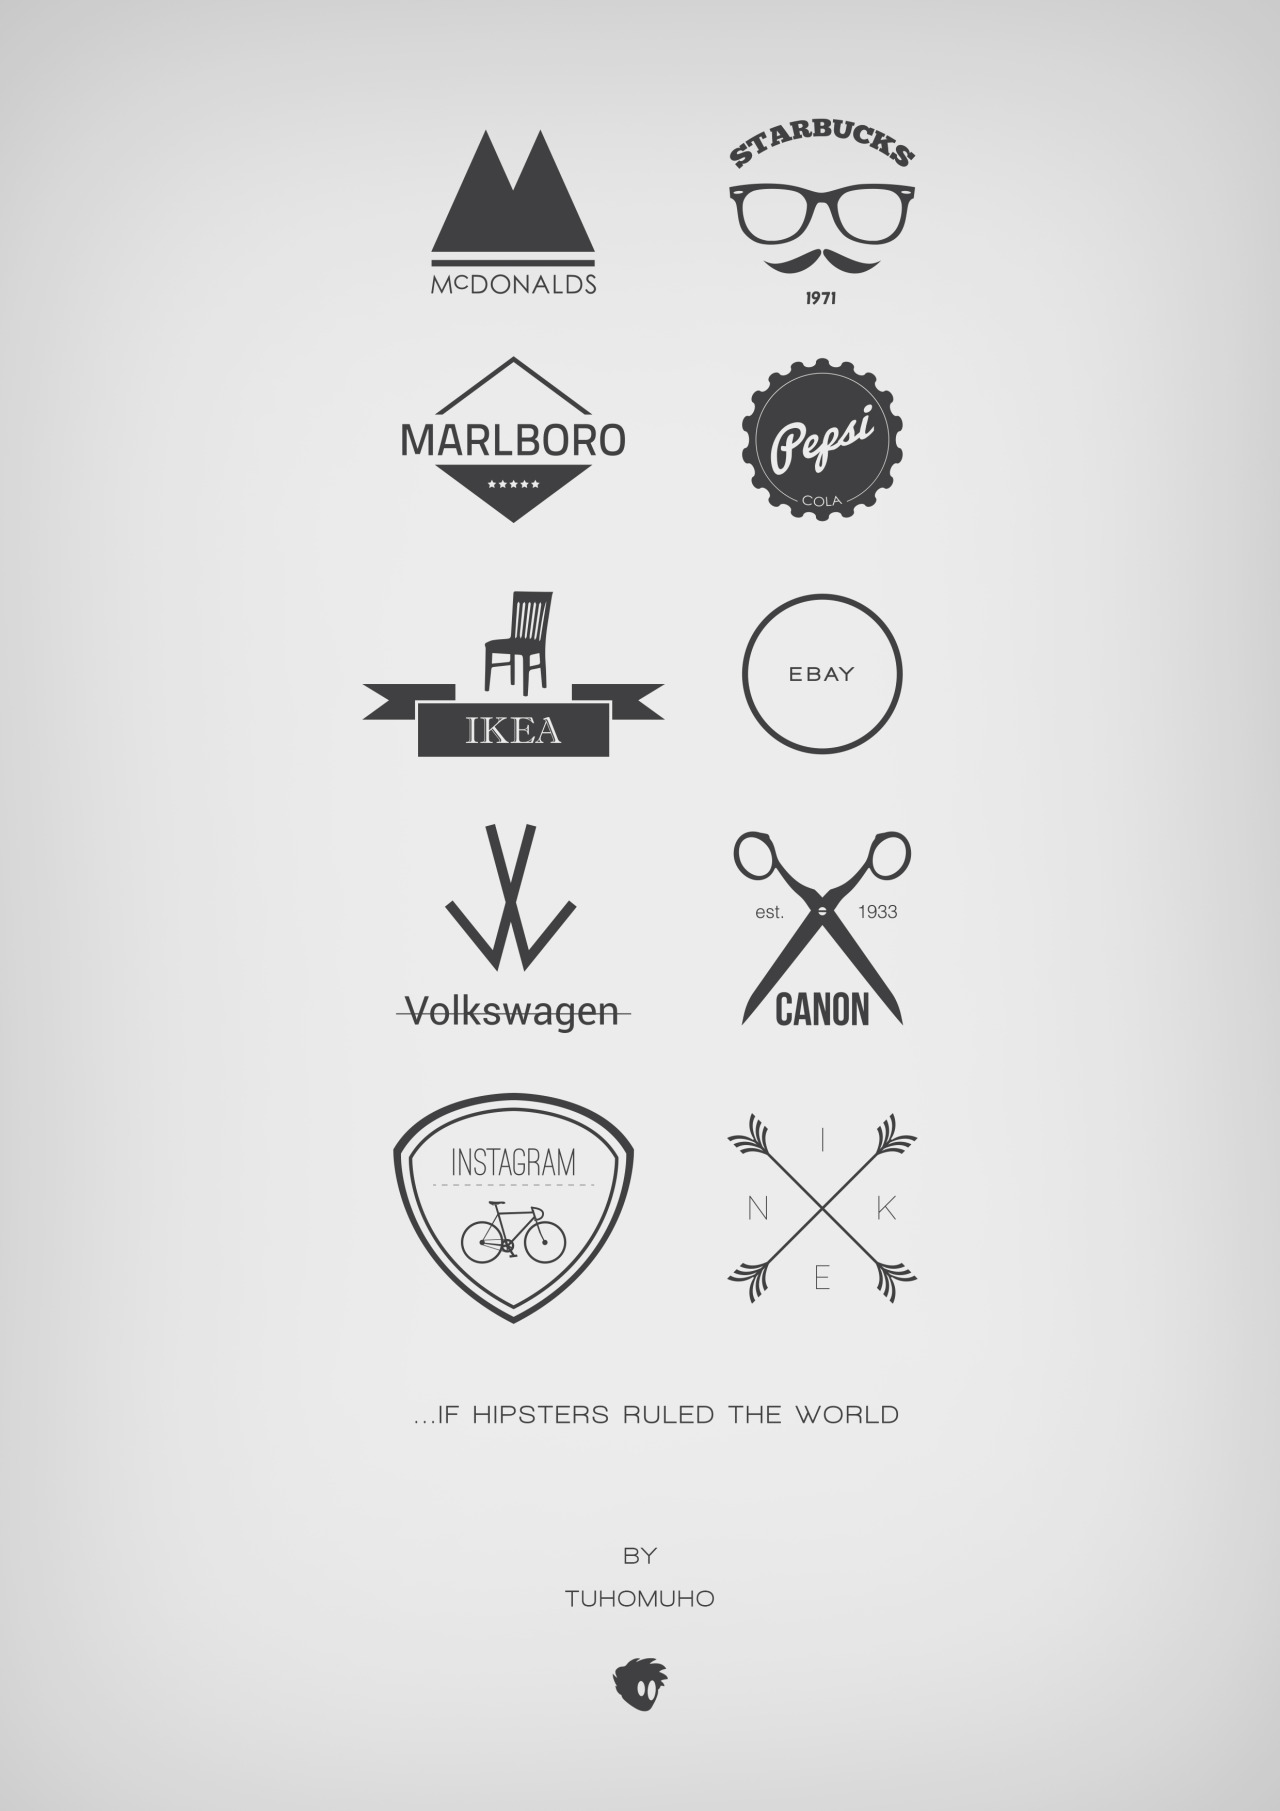 designersof:  If hipsters ruled the world.